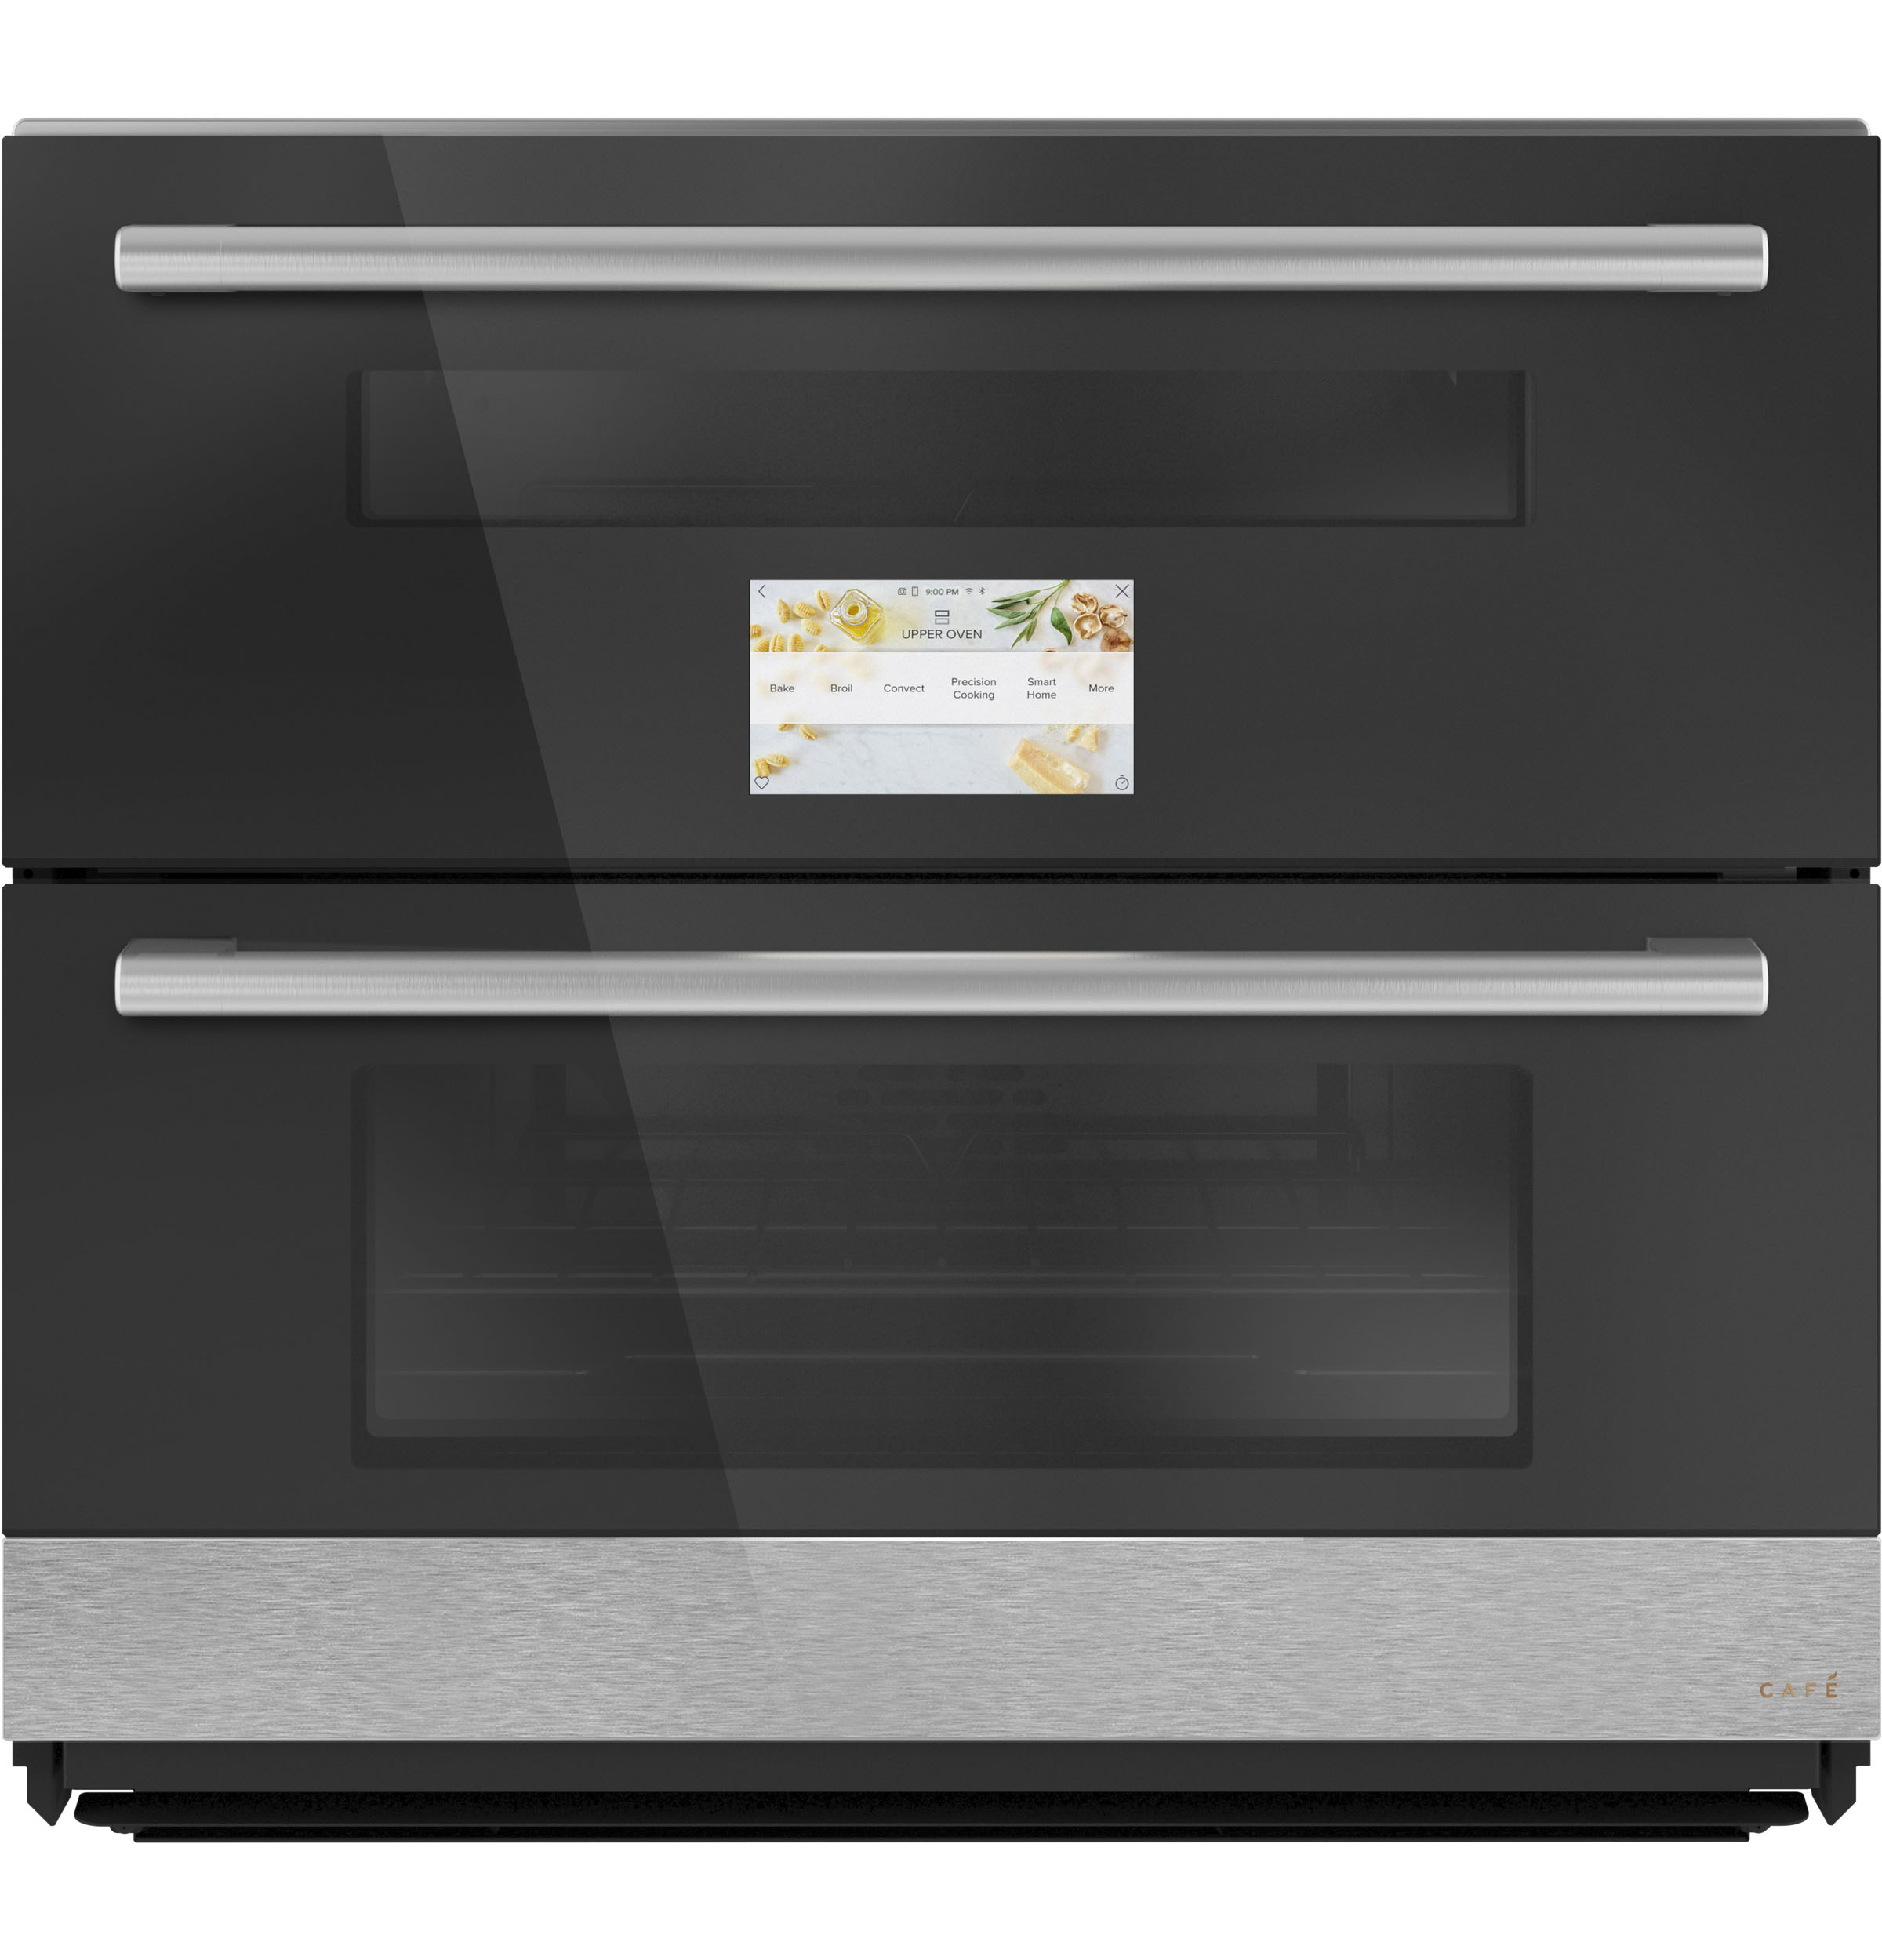 """Cafe Café™ 30"""" Smart Built-In Twin Flex Single Wall Oven in Platinum Glass"""